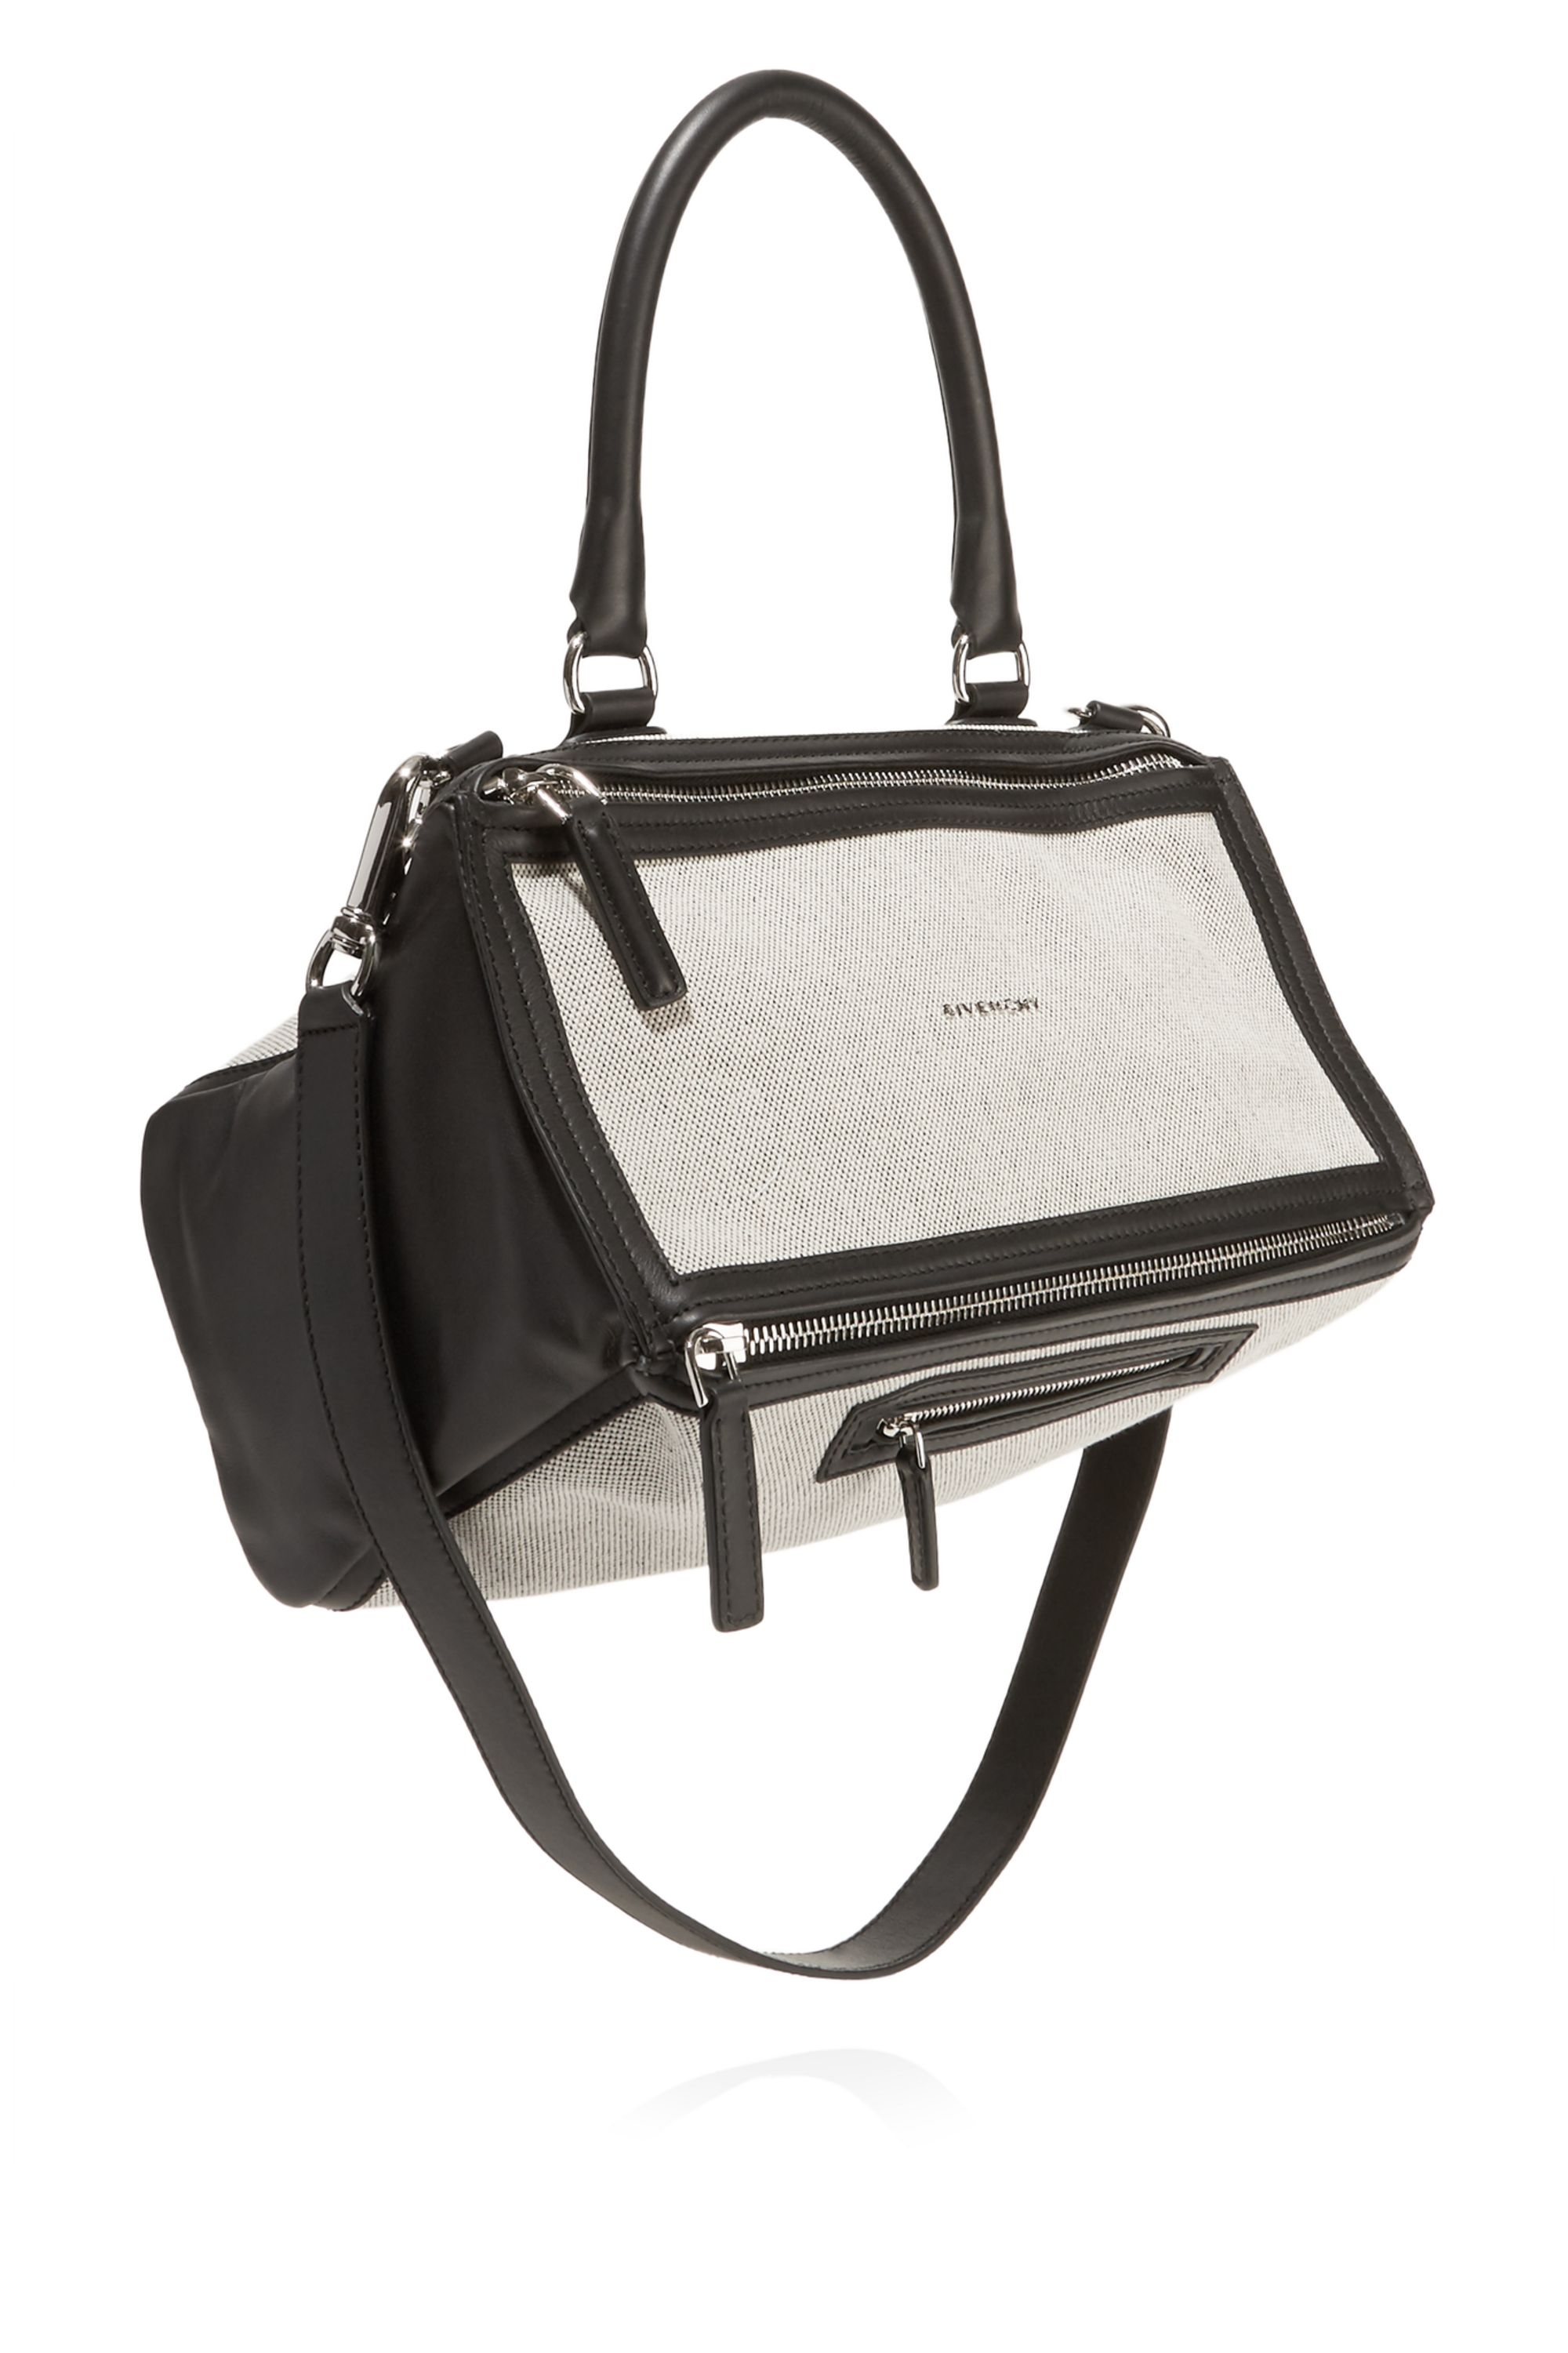 Givenchy Medium Pandora bag in black leather and off-white canvas